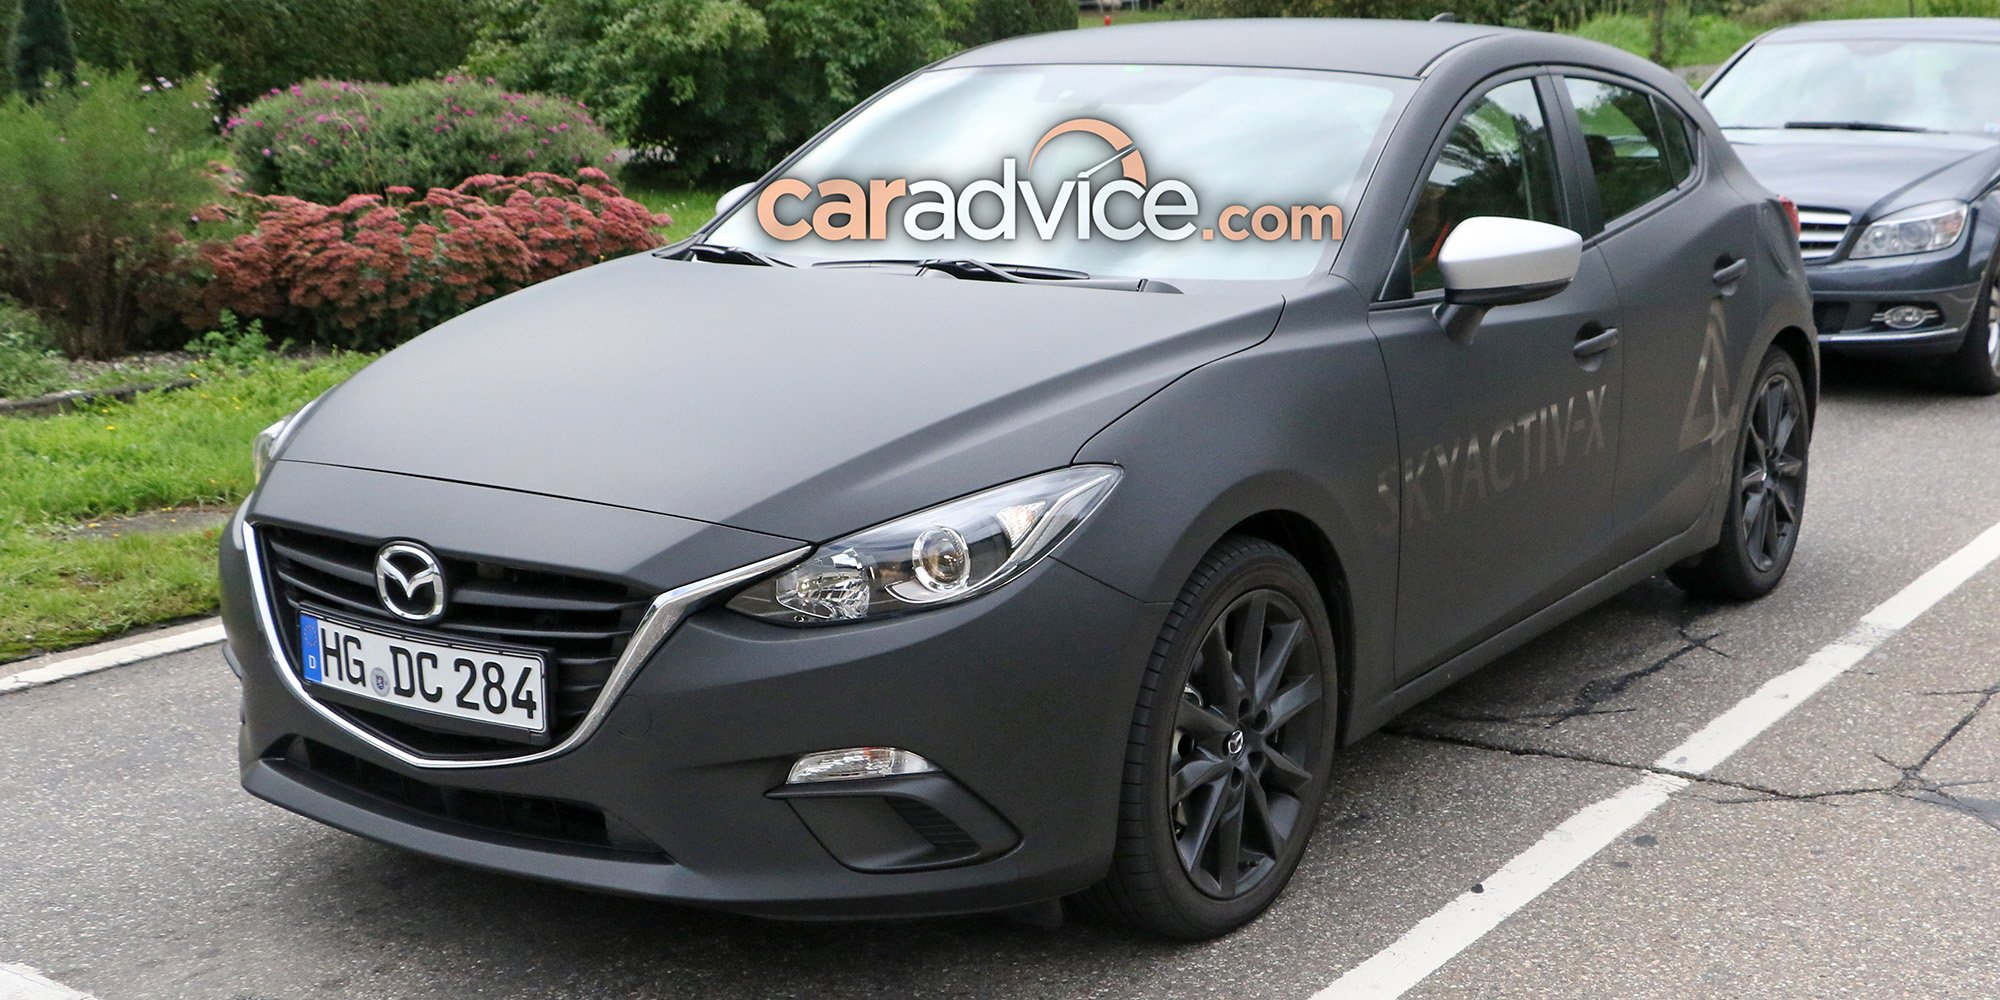 2019 mazda 3 spied with skyactiv x engine photos 1 of 9. Black Bedroom Furniture Sets. Home Design Ideas